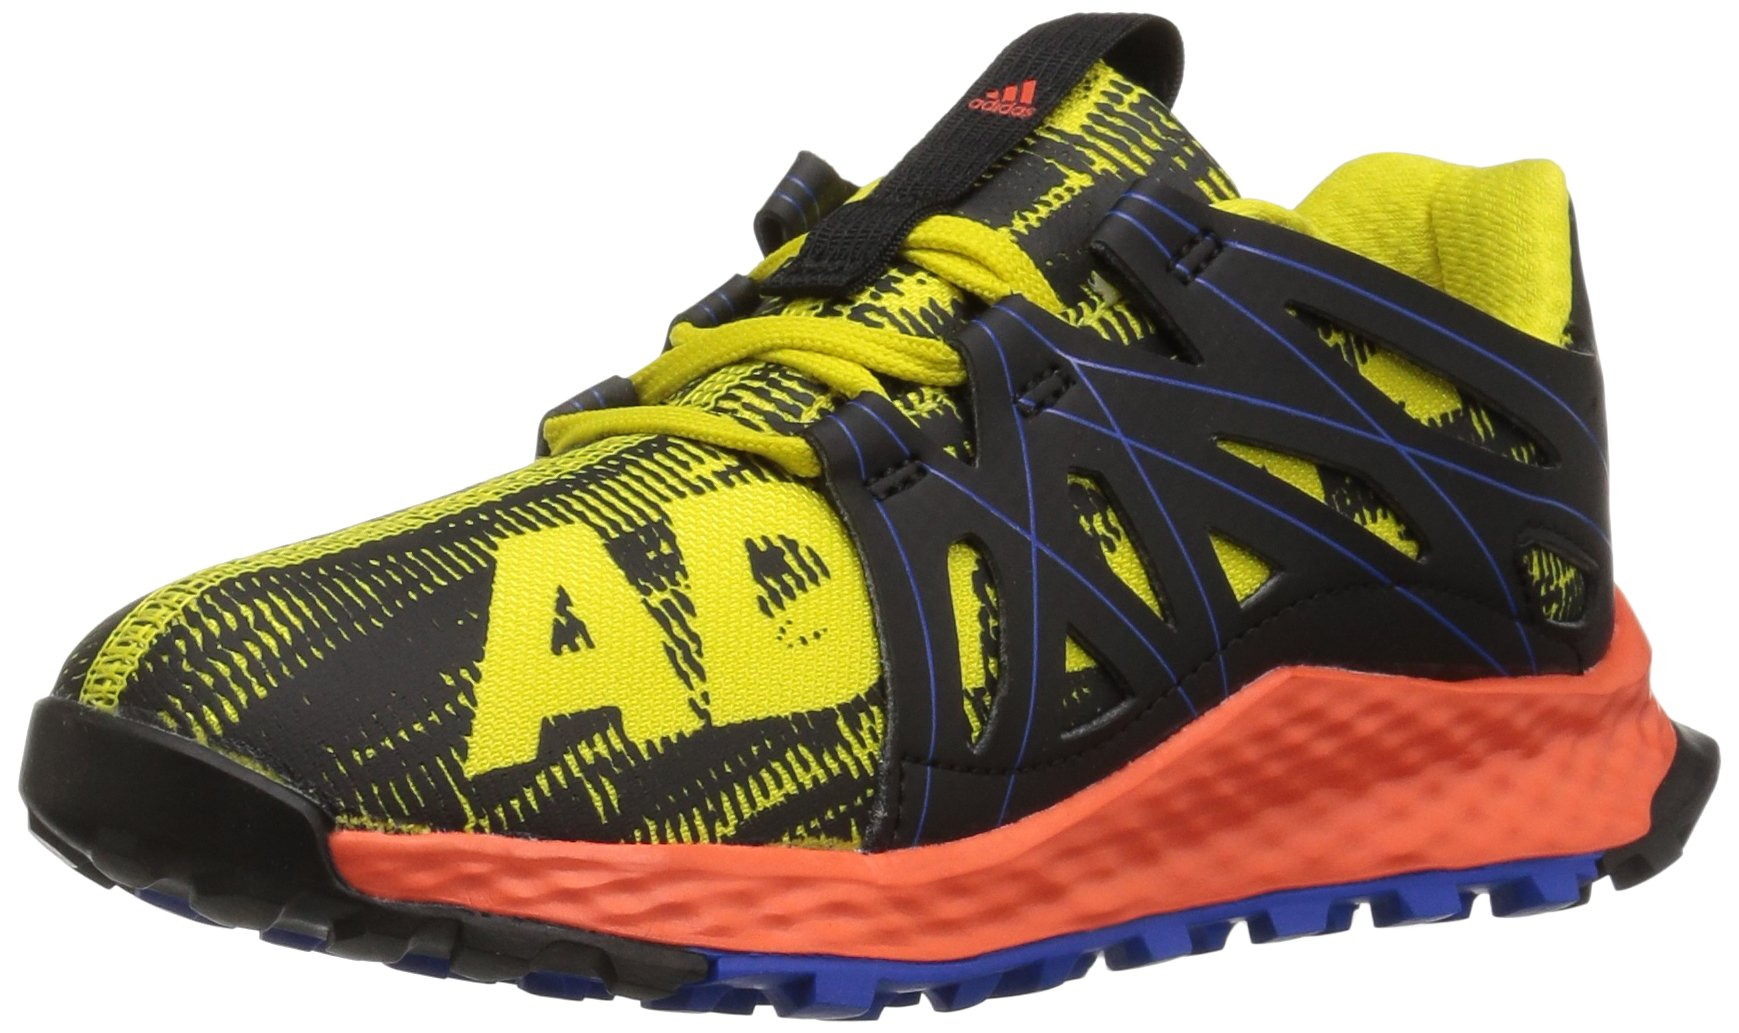 8d91a5ee8 Galleon - Adidas Performance Boys  Vigor Bounce C Trail Runner ...